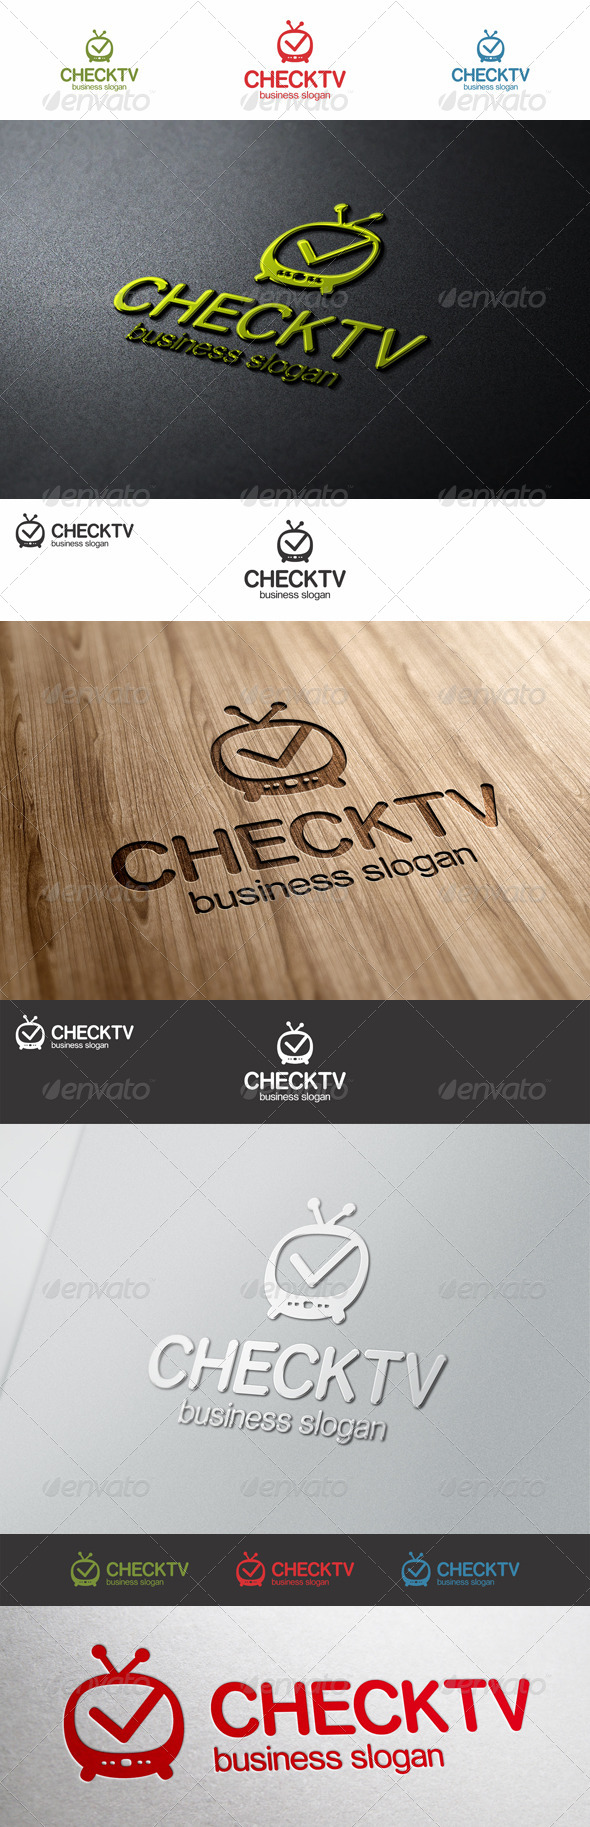 GraphicRiver Check Tv Logo 7750045